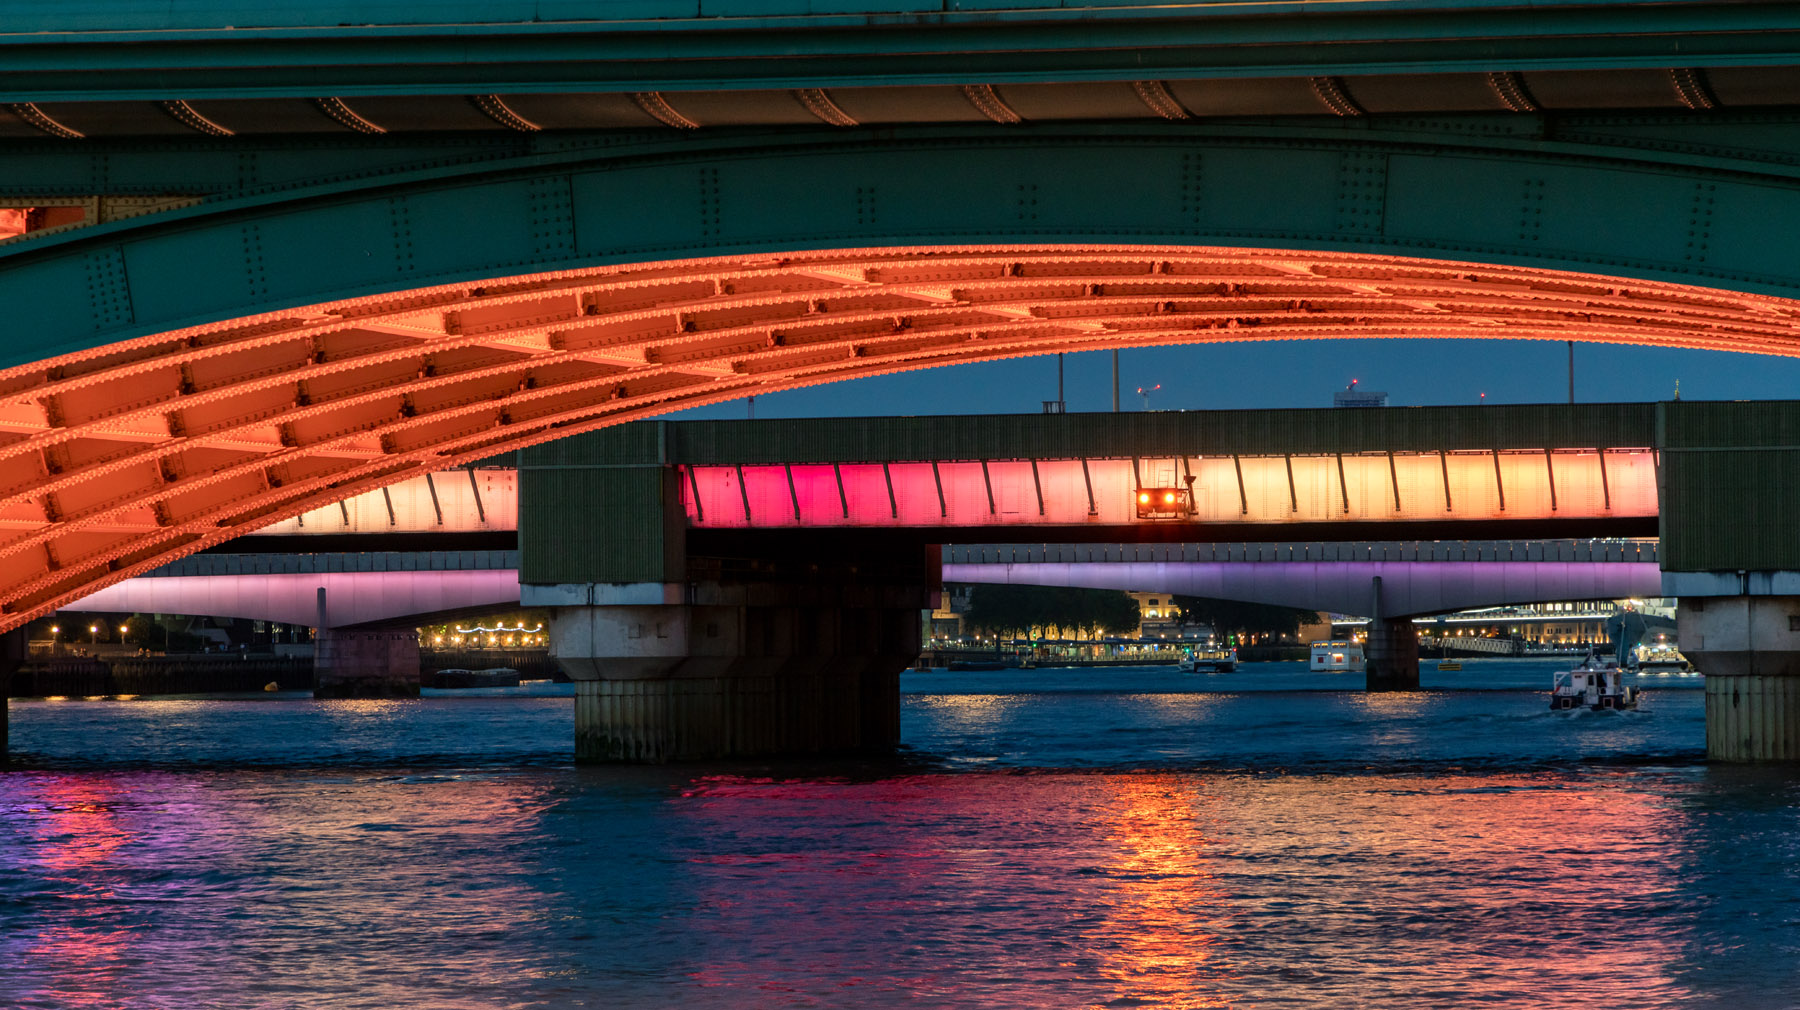 Illuminated River Project by Leo Villareal - Photos by Joas Souza